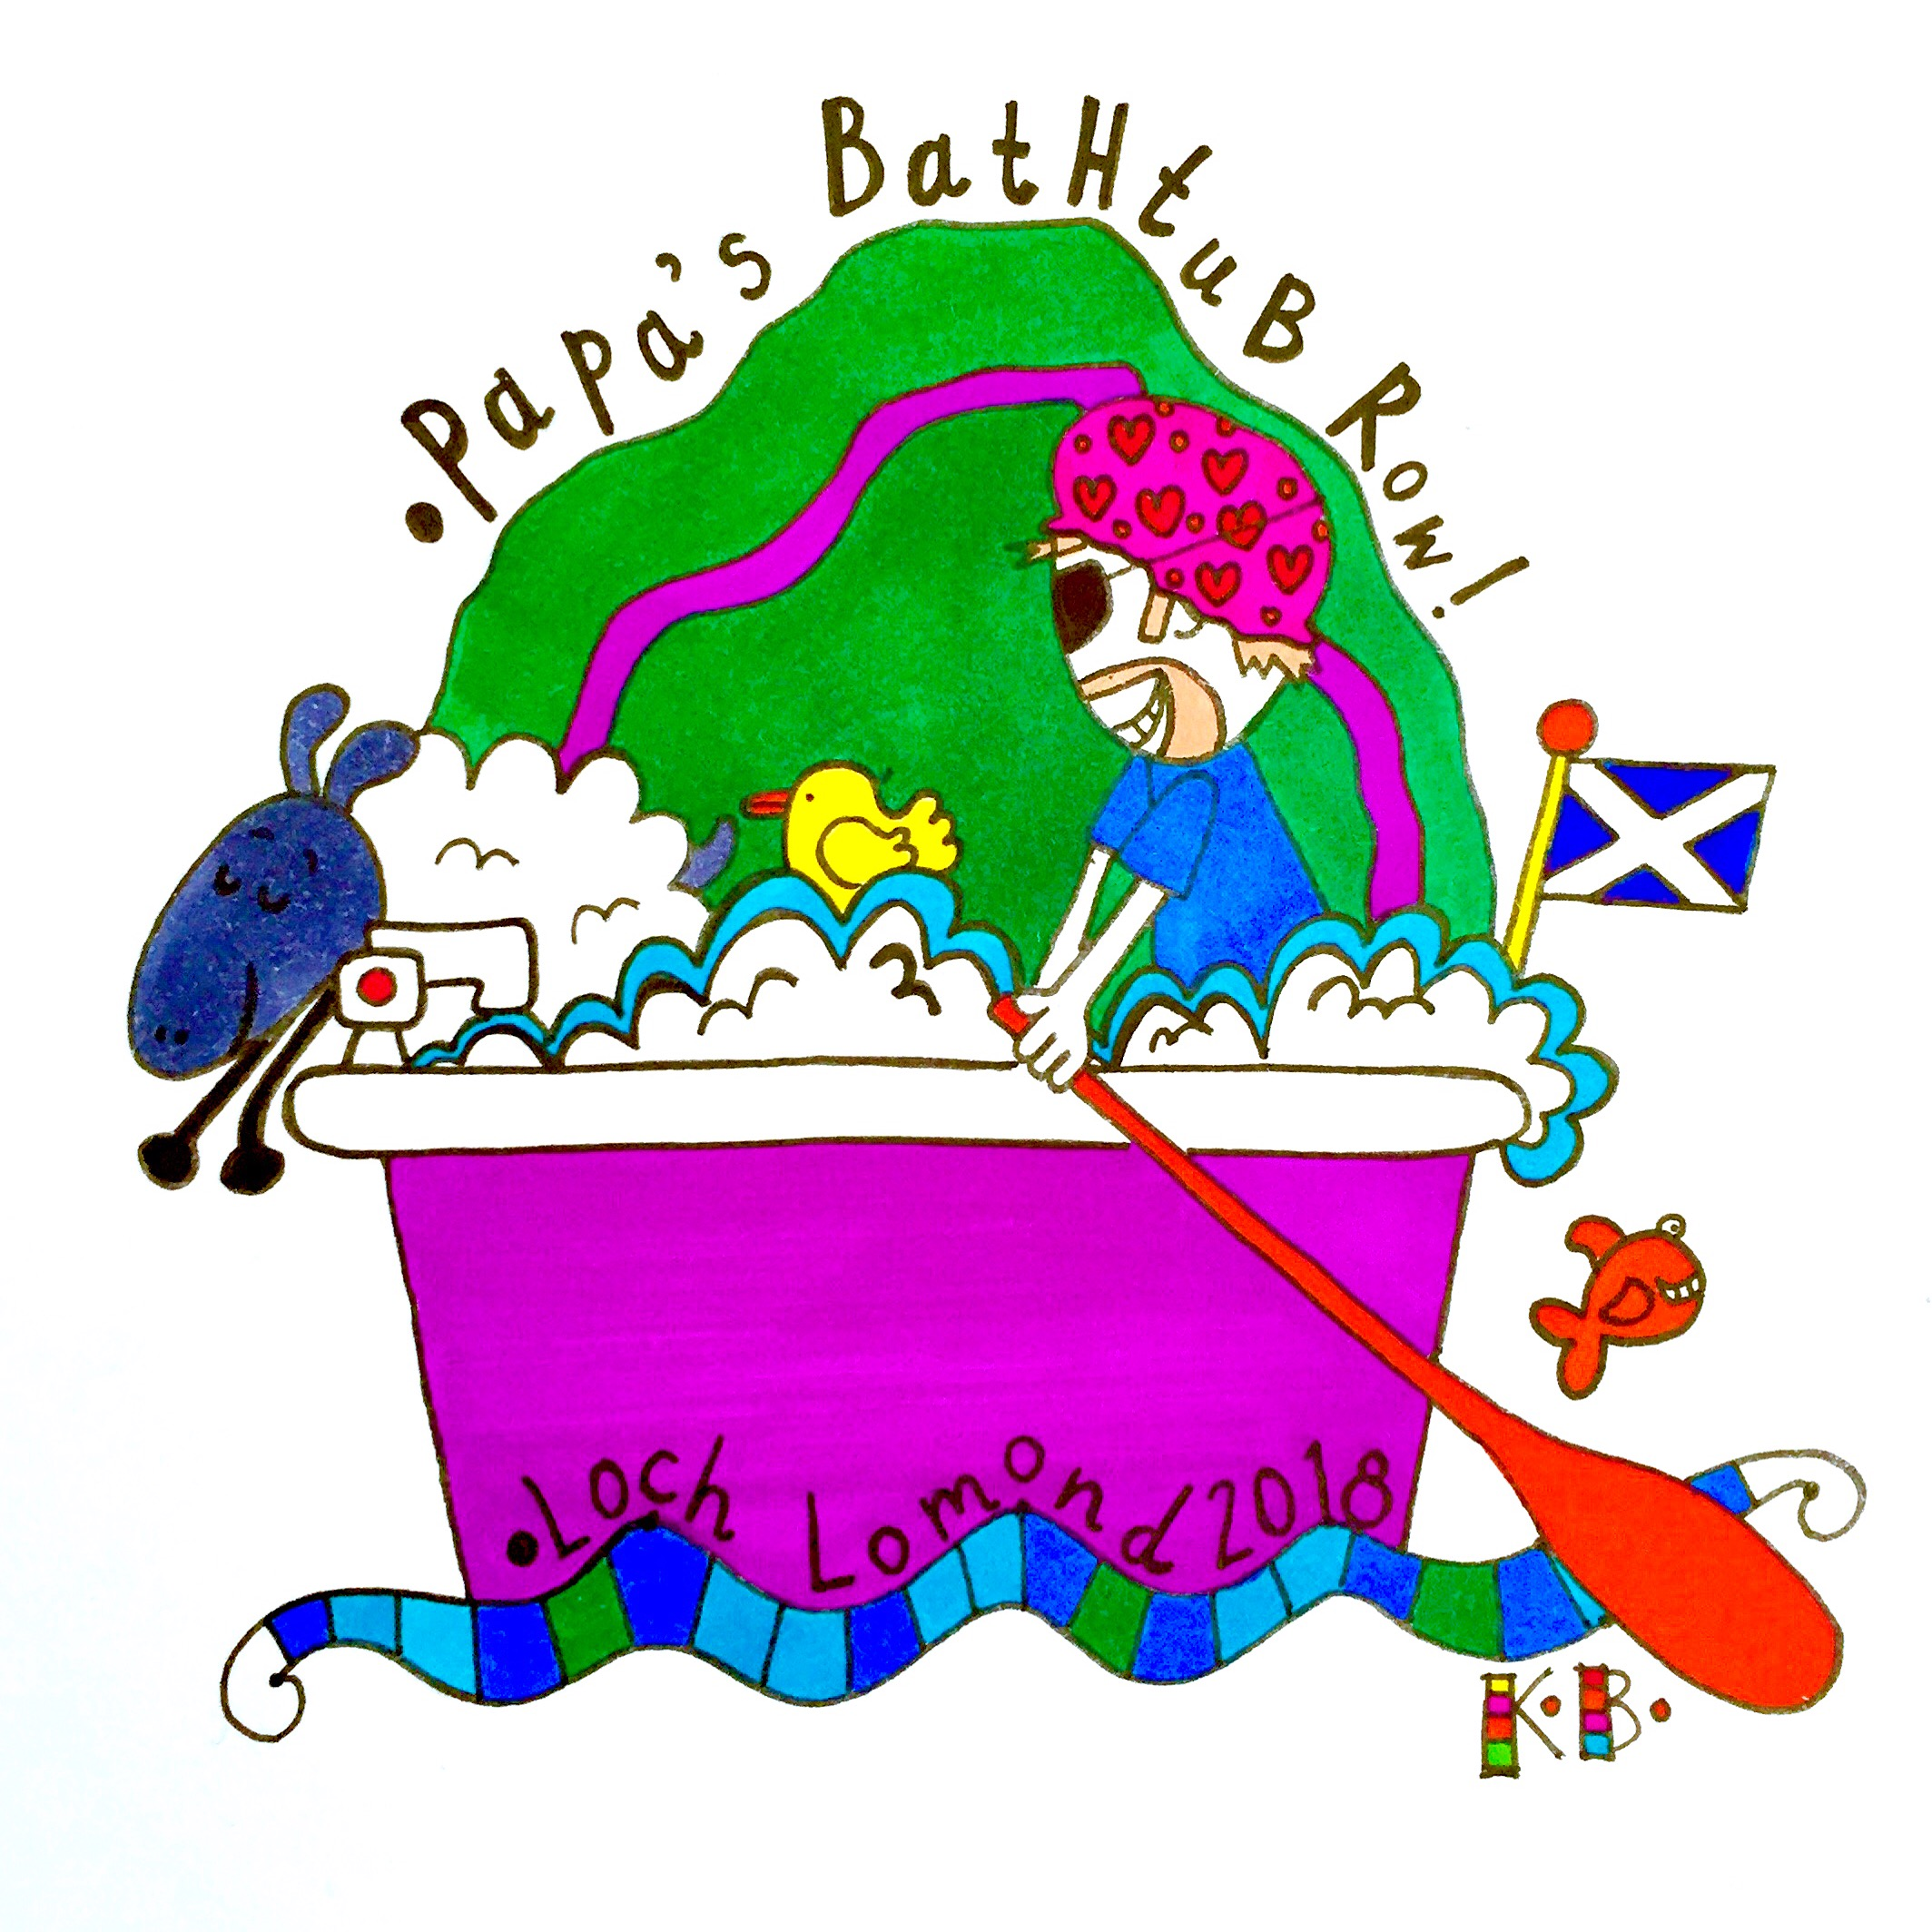 Logo for a charity bathtub row. Yes I though the same! Seriously? Apparently so!